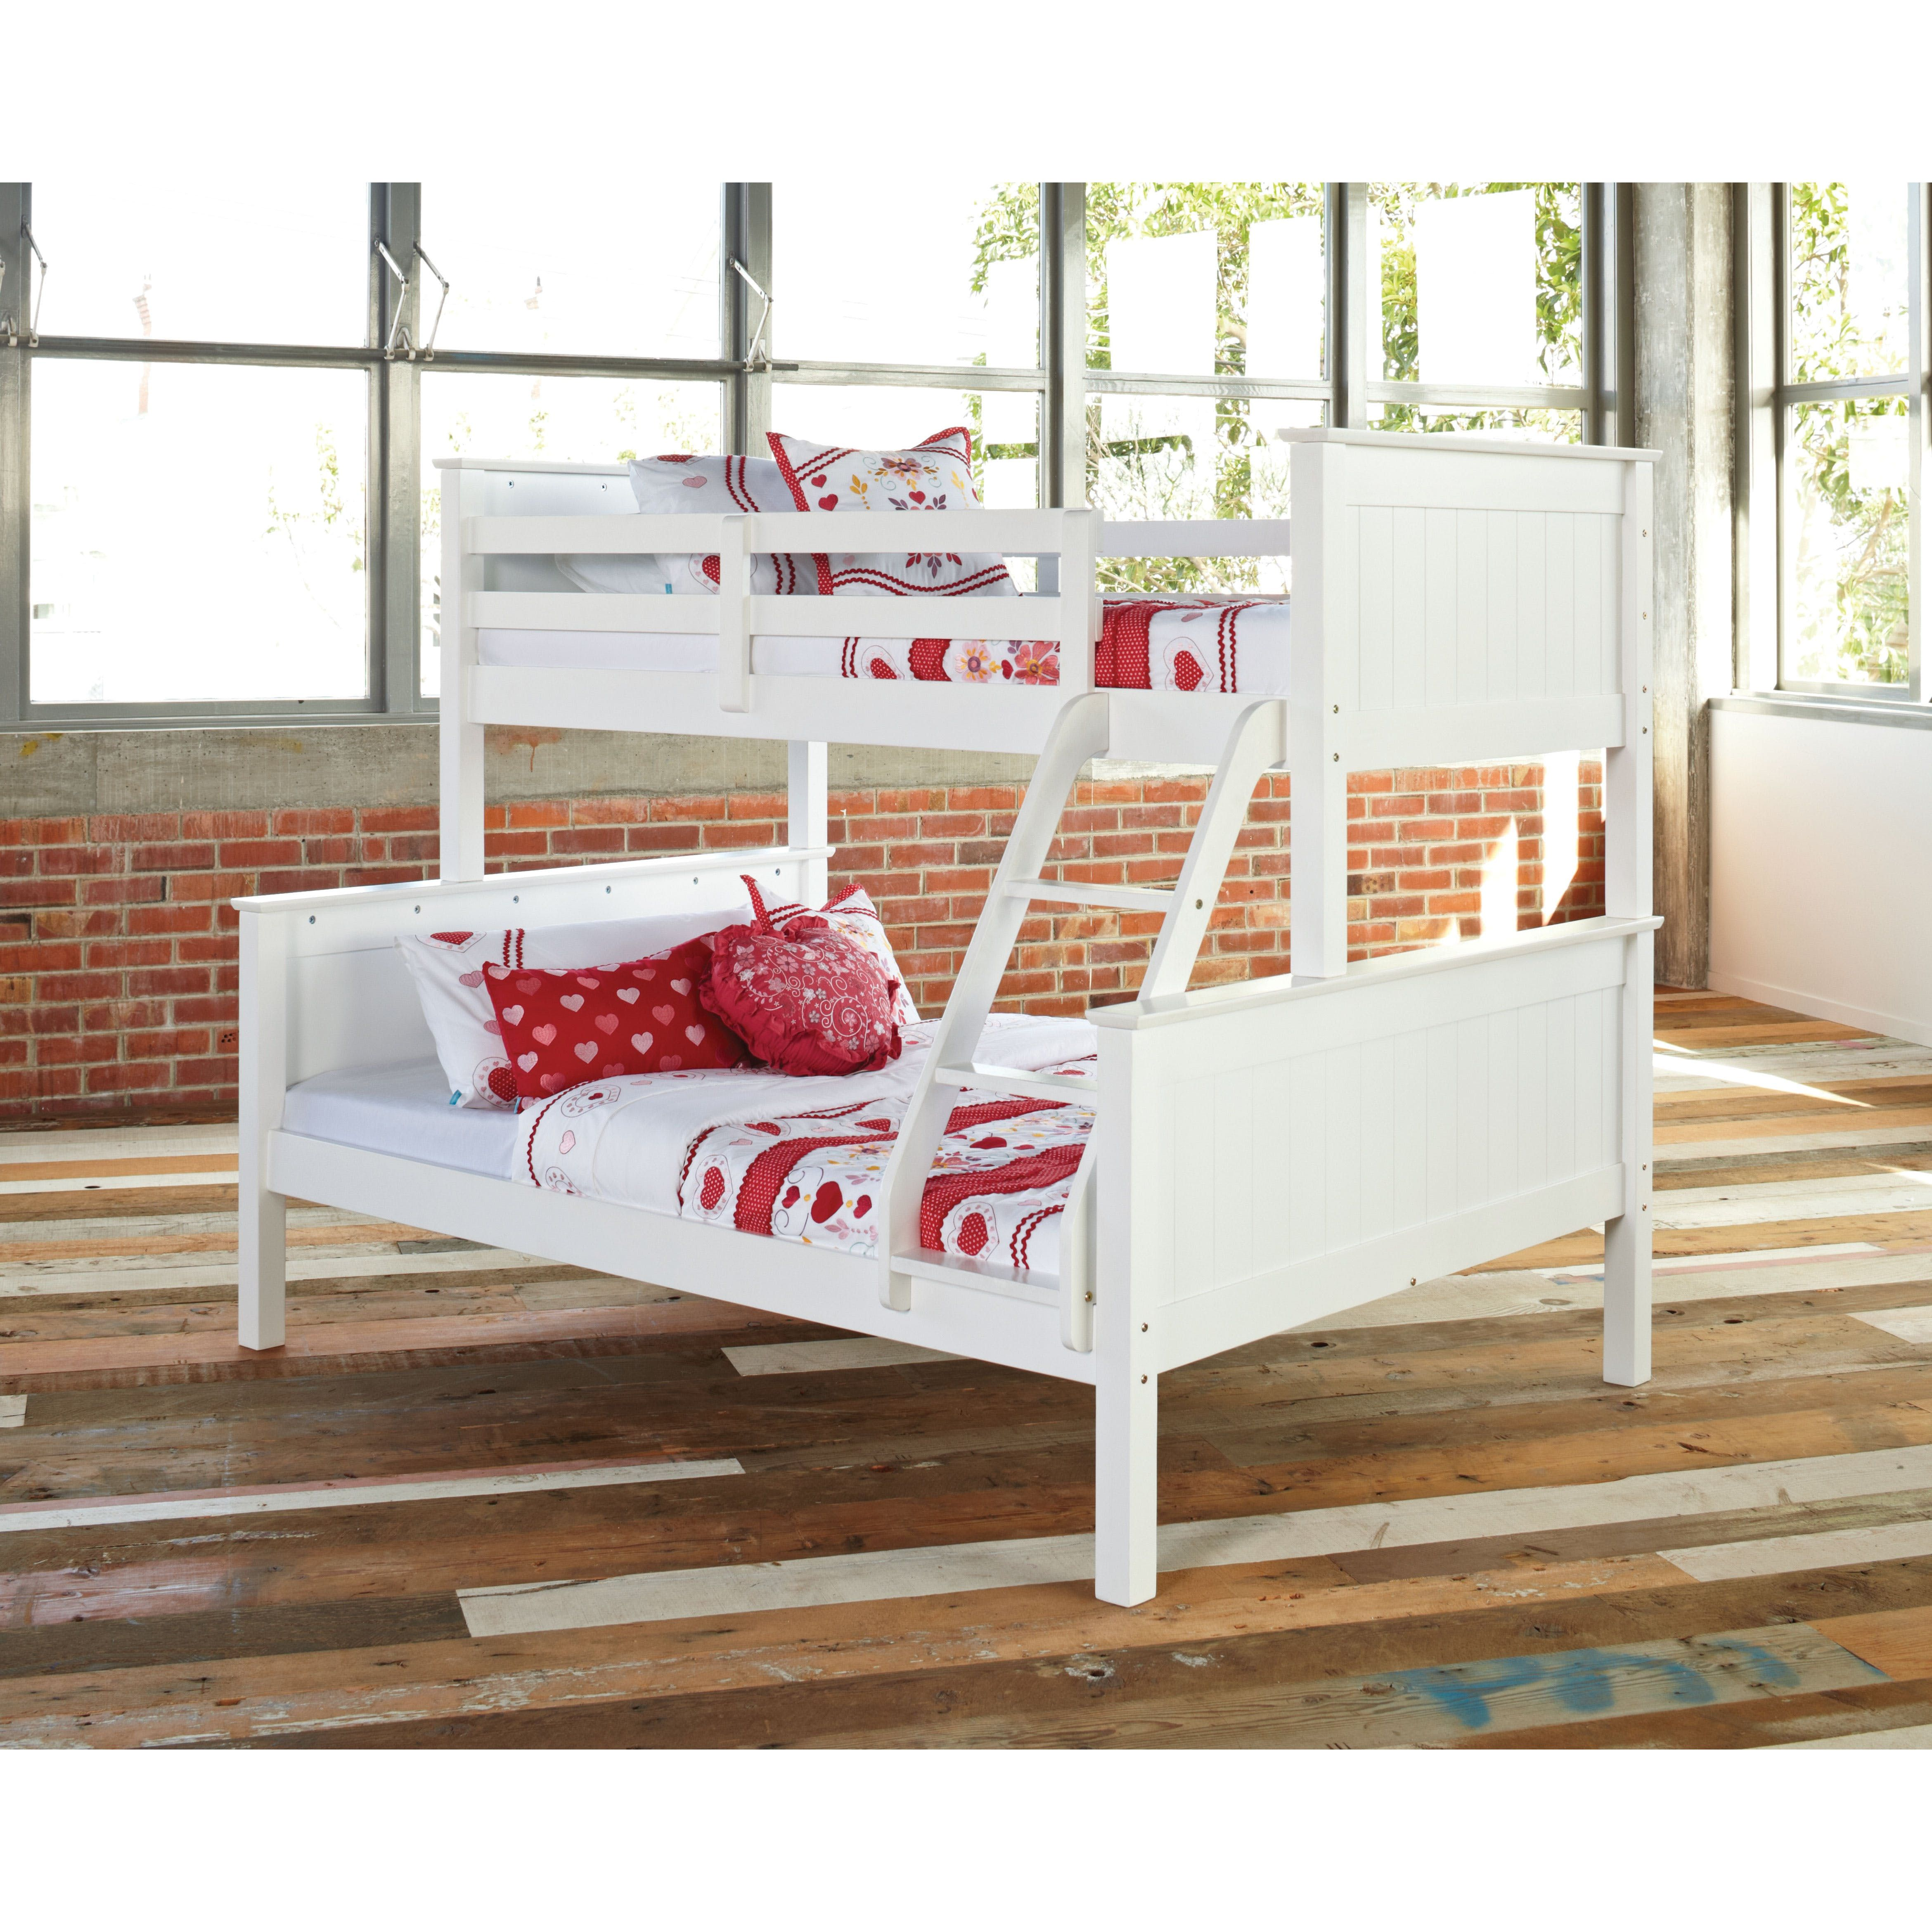 Selena duo bunk bed frame by nero furniture harvey norman new selena duo bunk bed frame by nero furniture harvey norman new zealand jeuxipadfo Choice Image